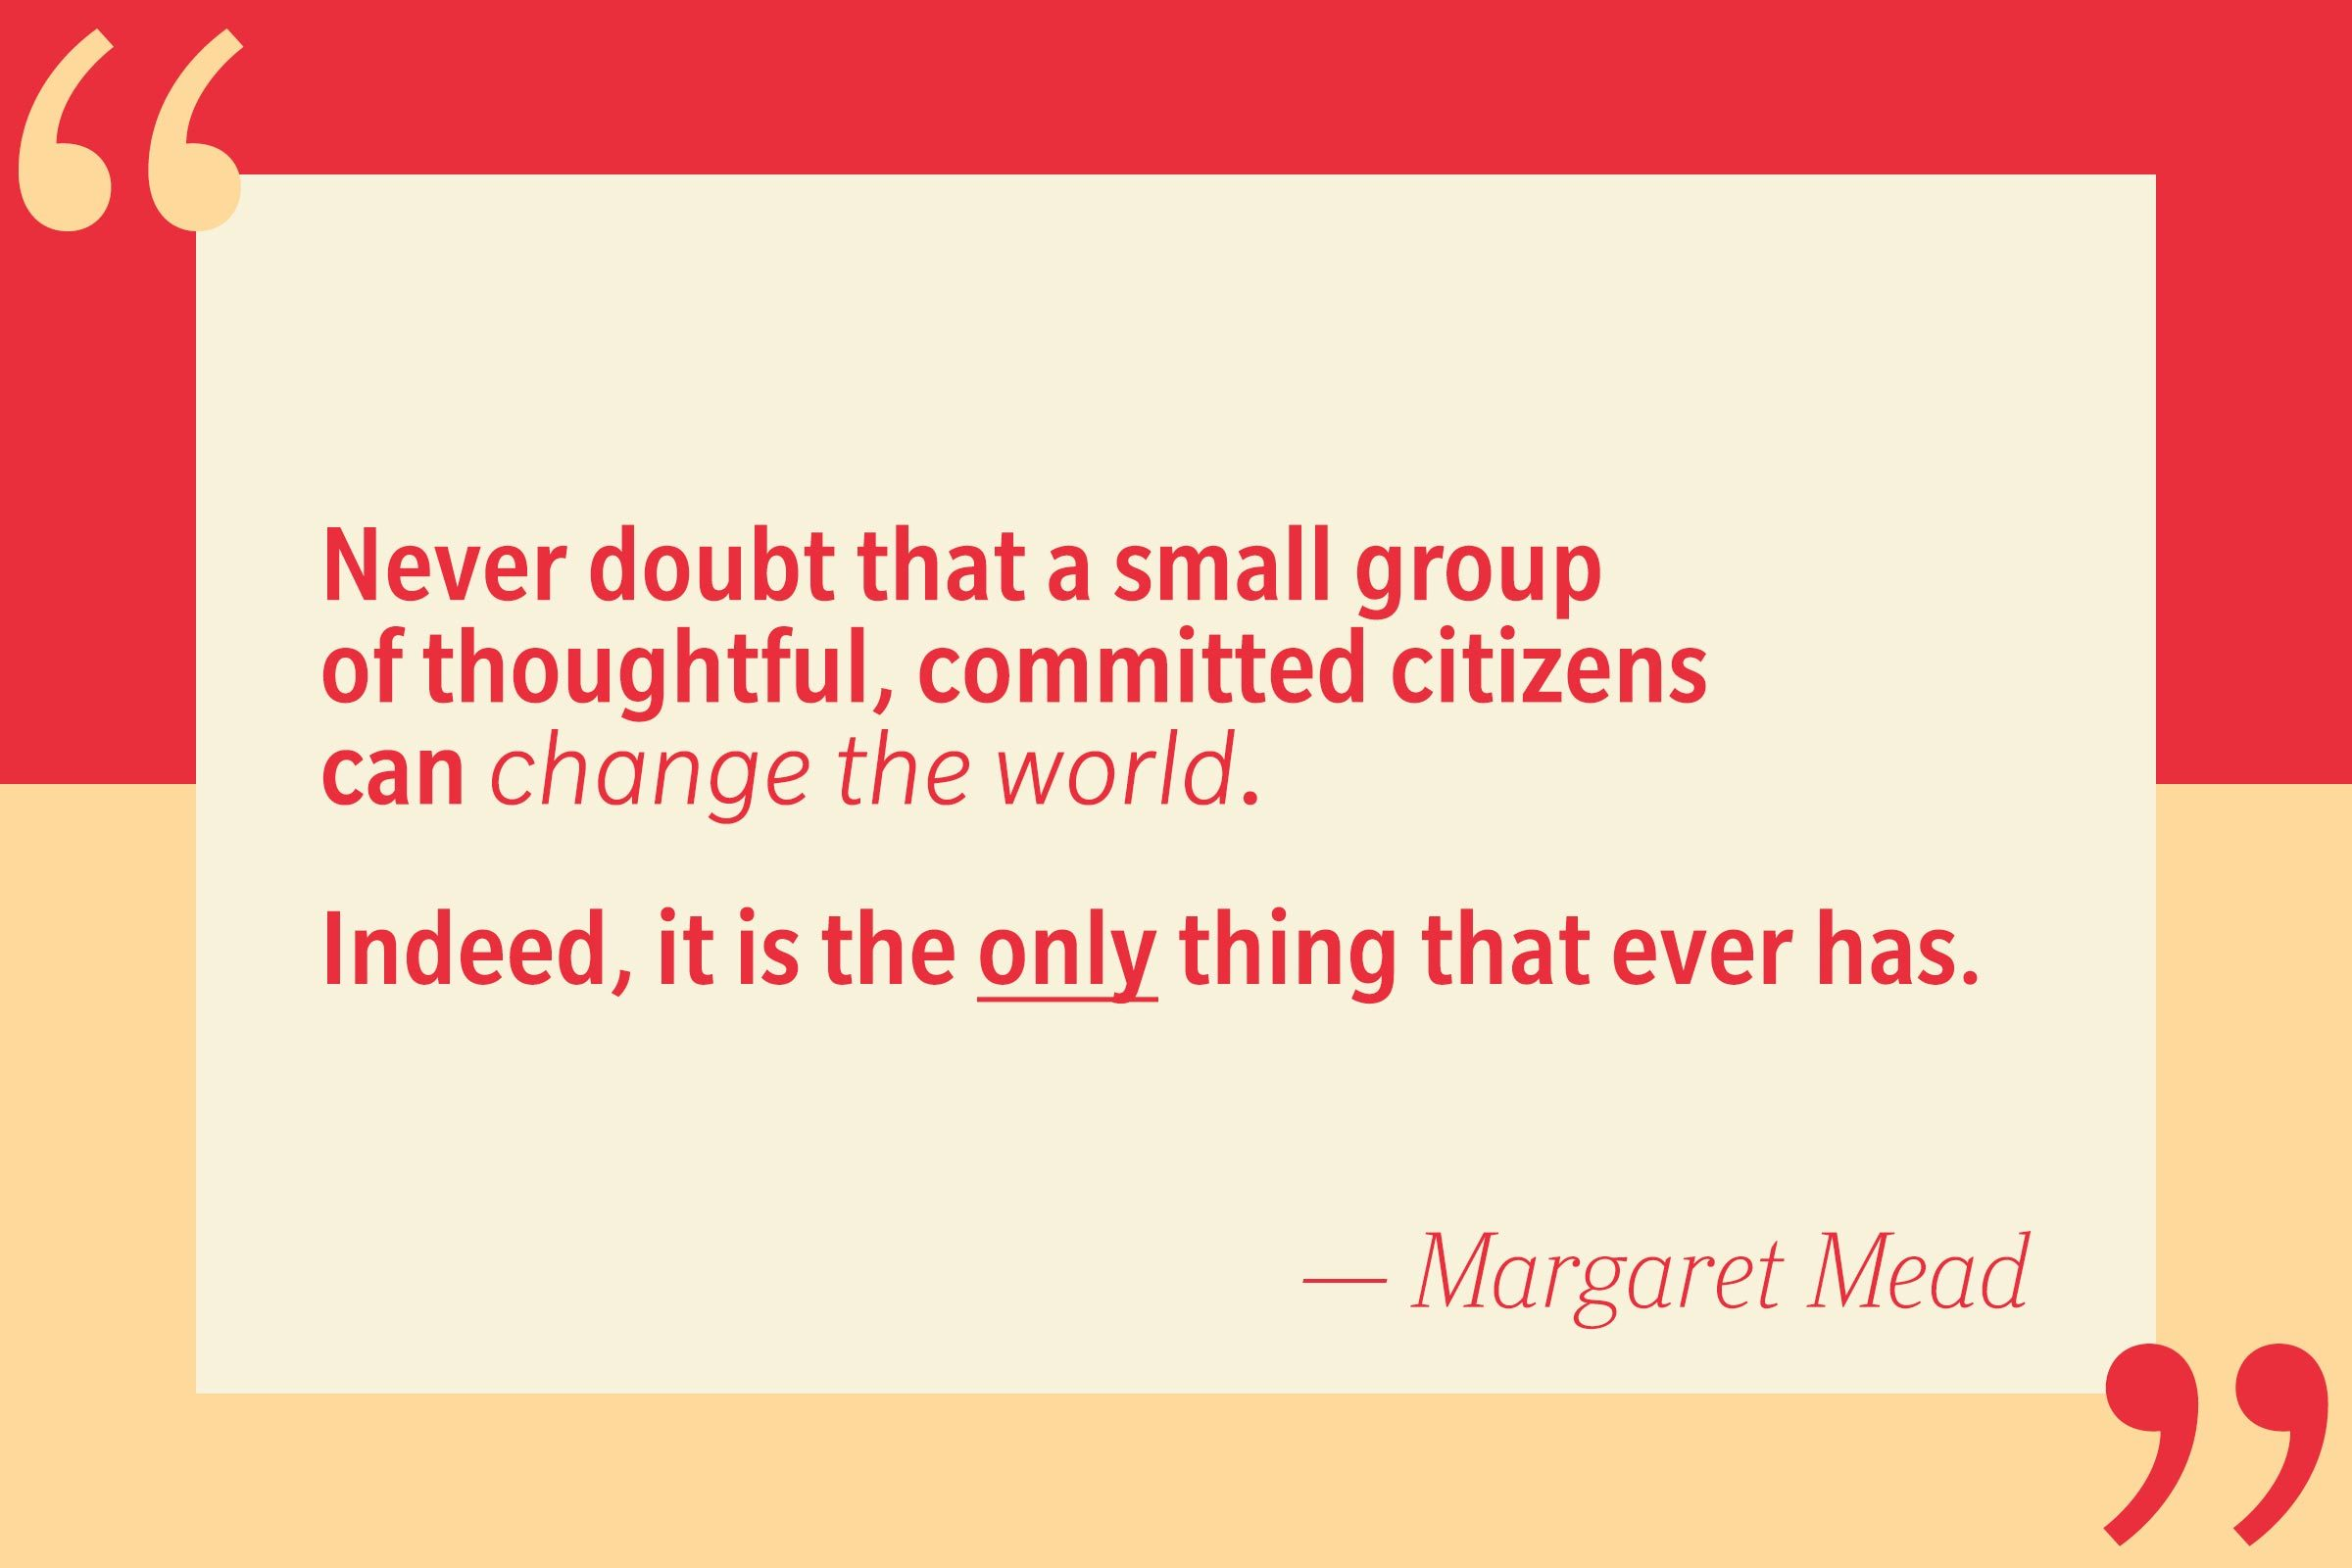 Never doubt that a small group of thoughtful, committed citizens can change the world. Indeed, it is the only thing that ever has. — Margaret Mead